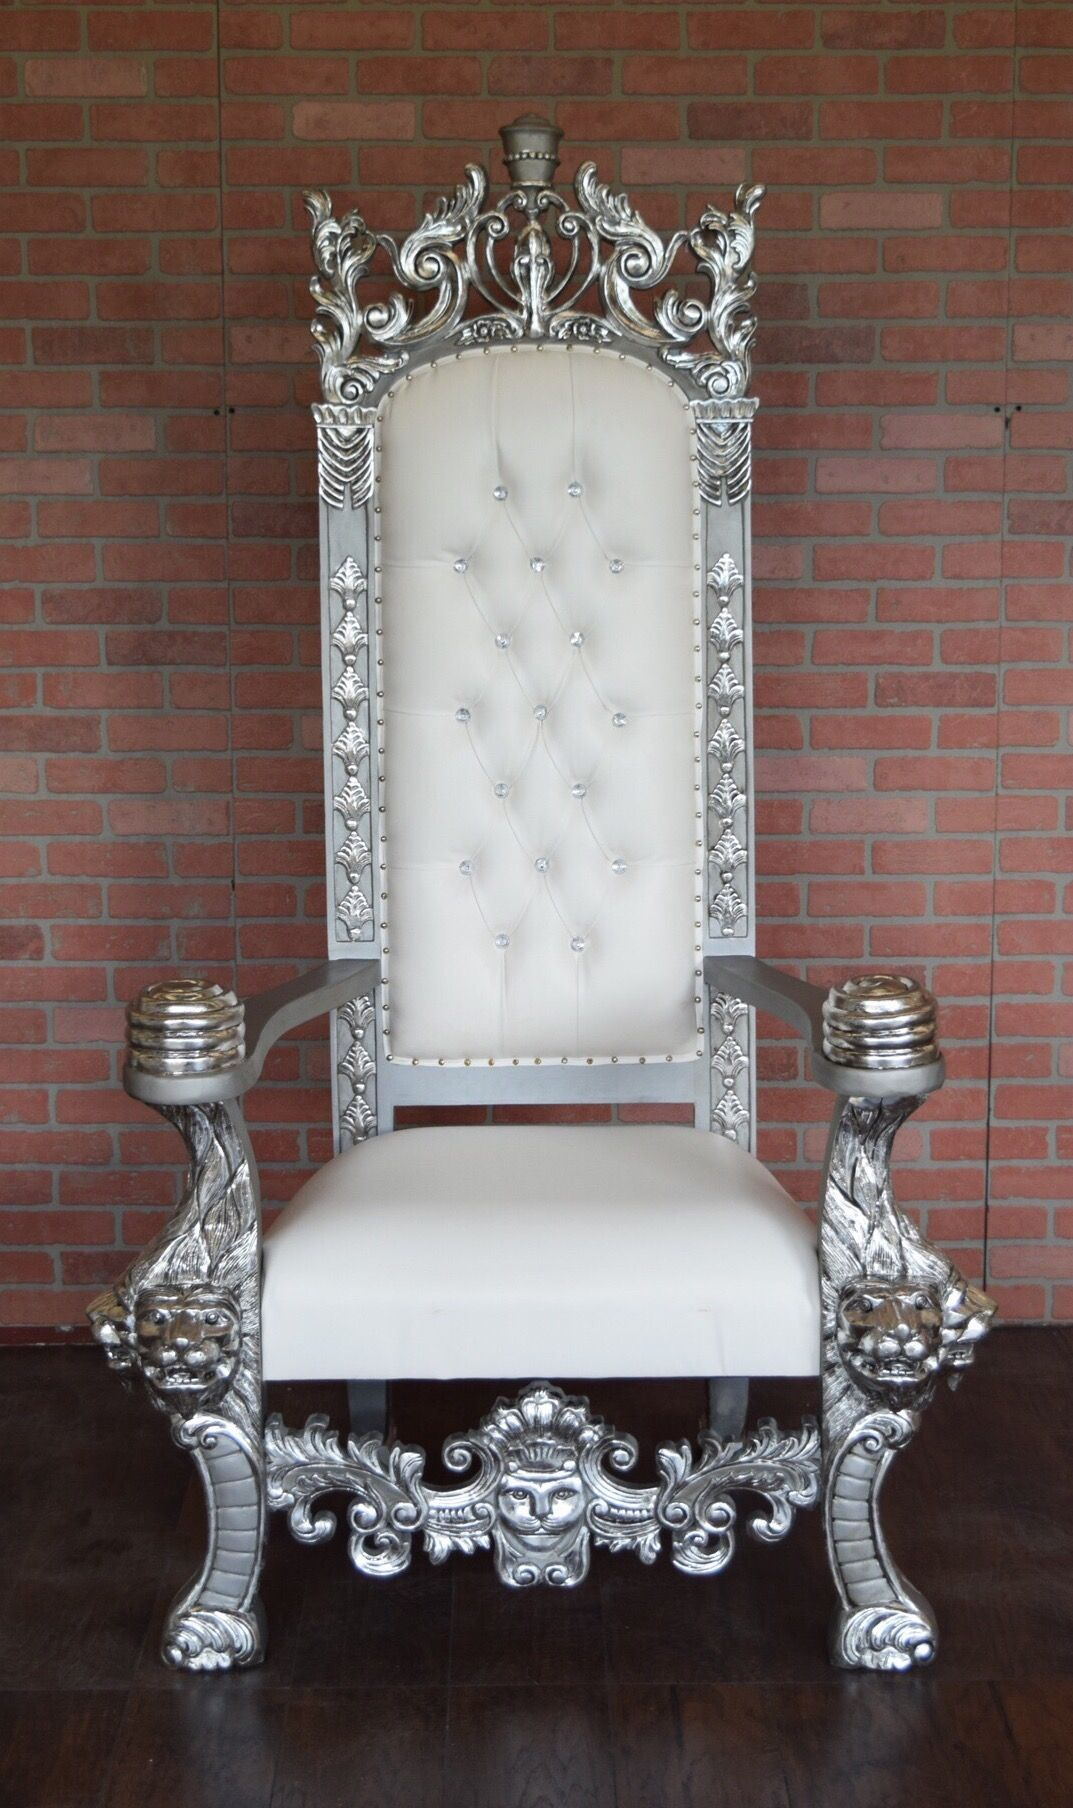 Awe Inspiring 25 Off Pre Order King Henry Lion Chair Silver White In Gamerscity Chair Design For Home Gamerscityorg